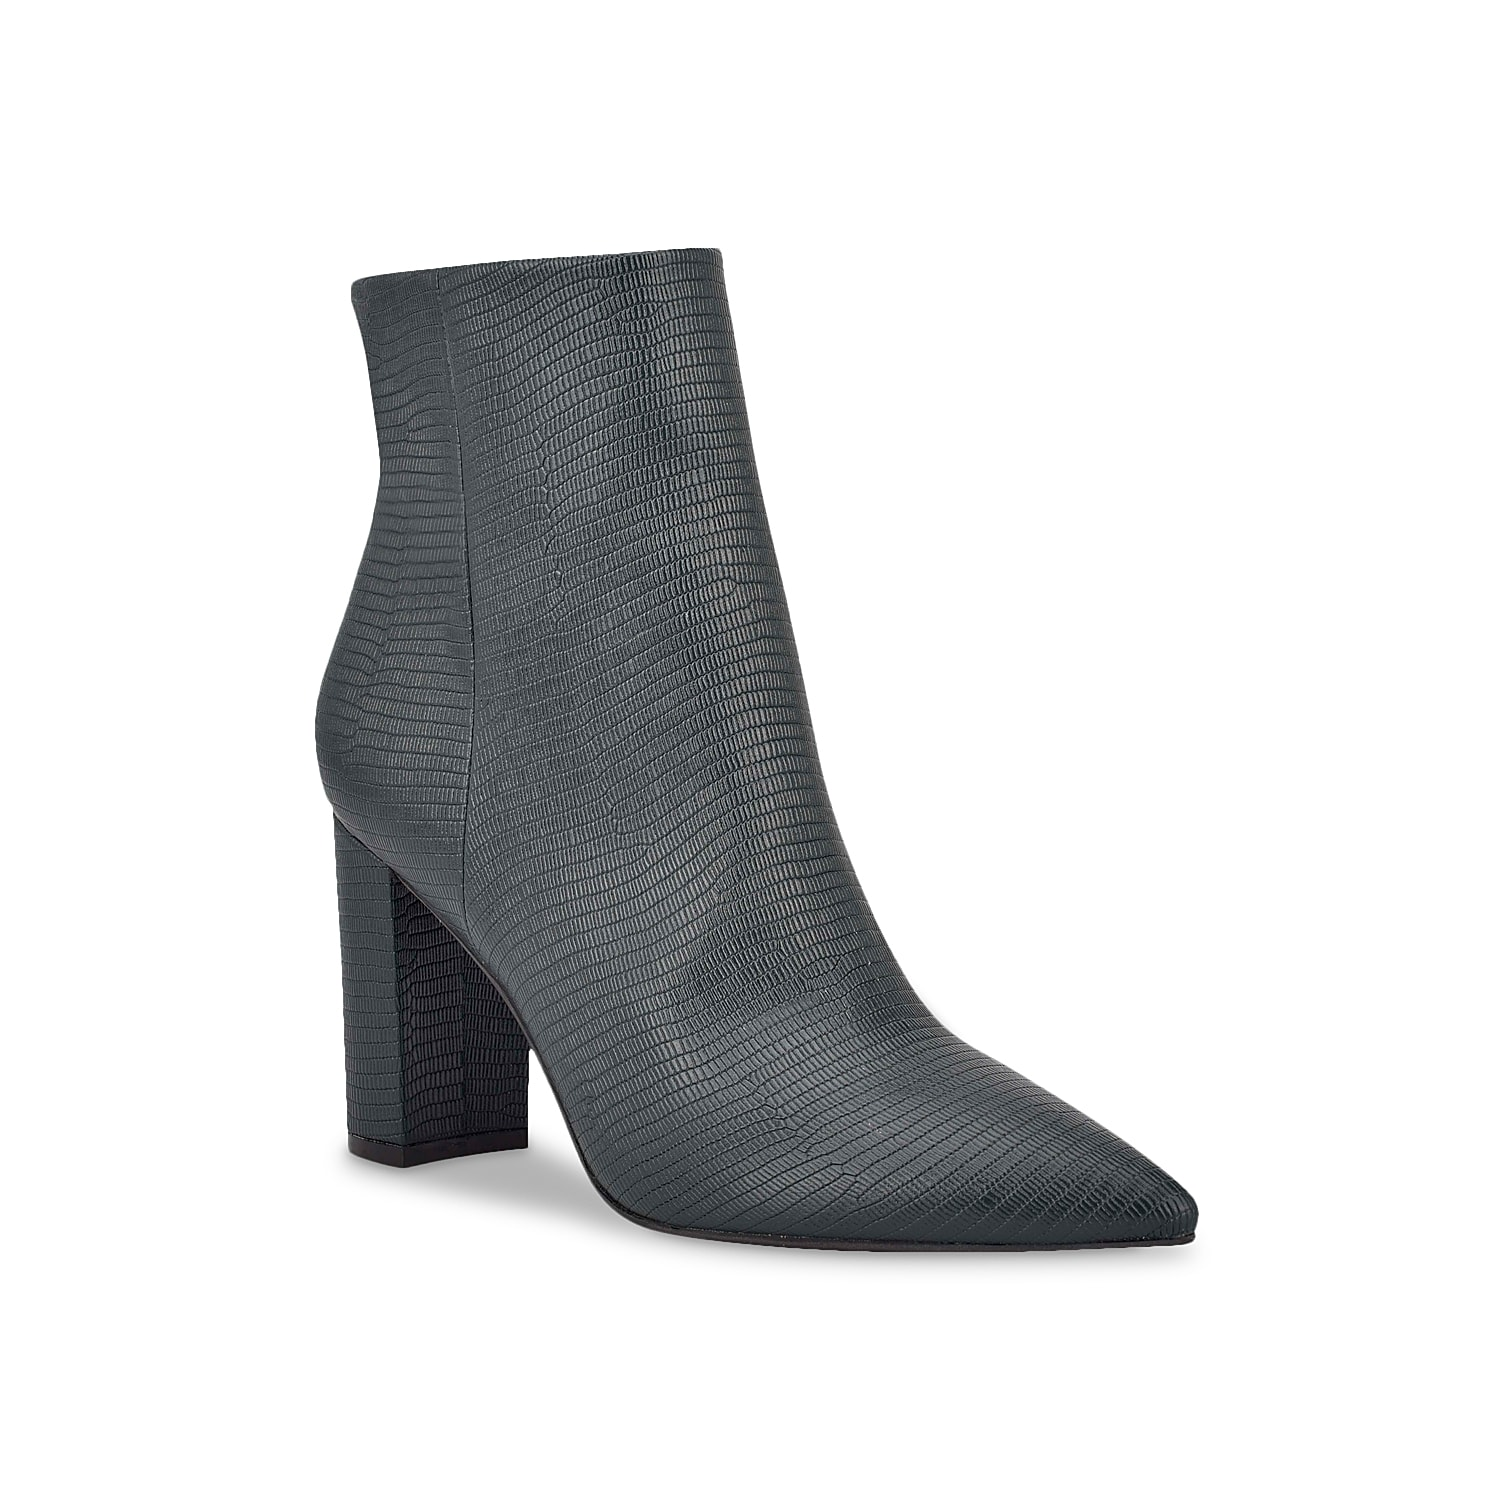 The Glorena bootie from Marc Fisher infuses elegance and poise to your ensemble. Made of leather, it is fashioned with pointed toe design and elevated with block heel.